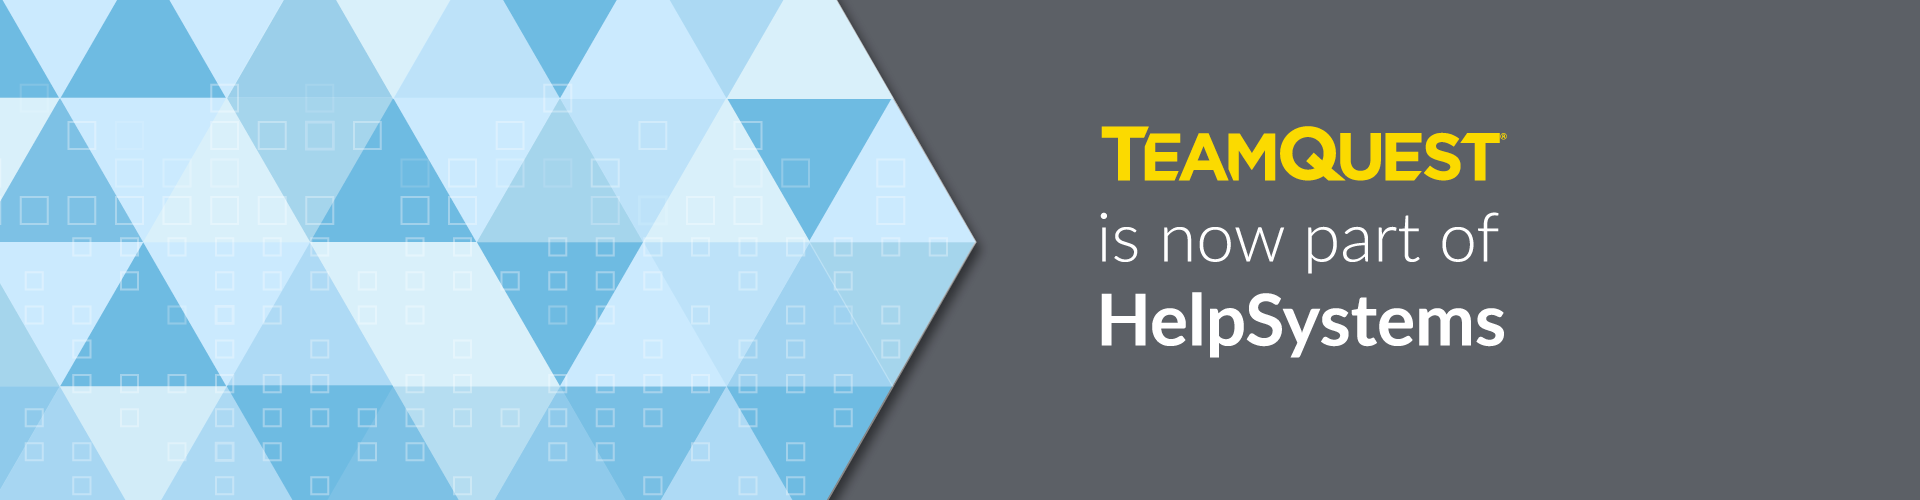 TeamQuest is now part of HelpSystems